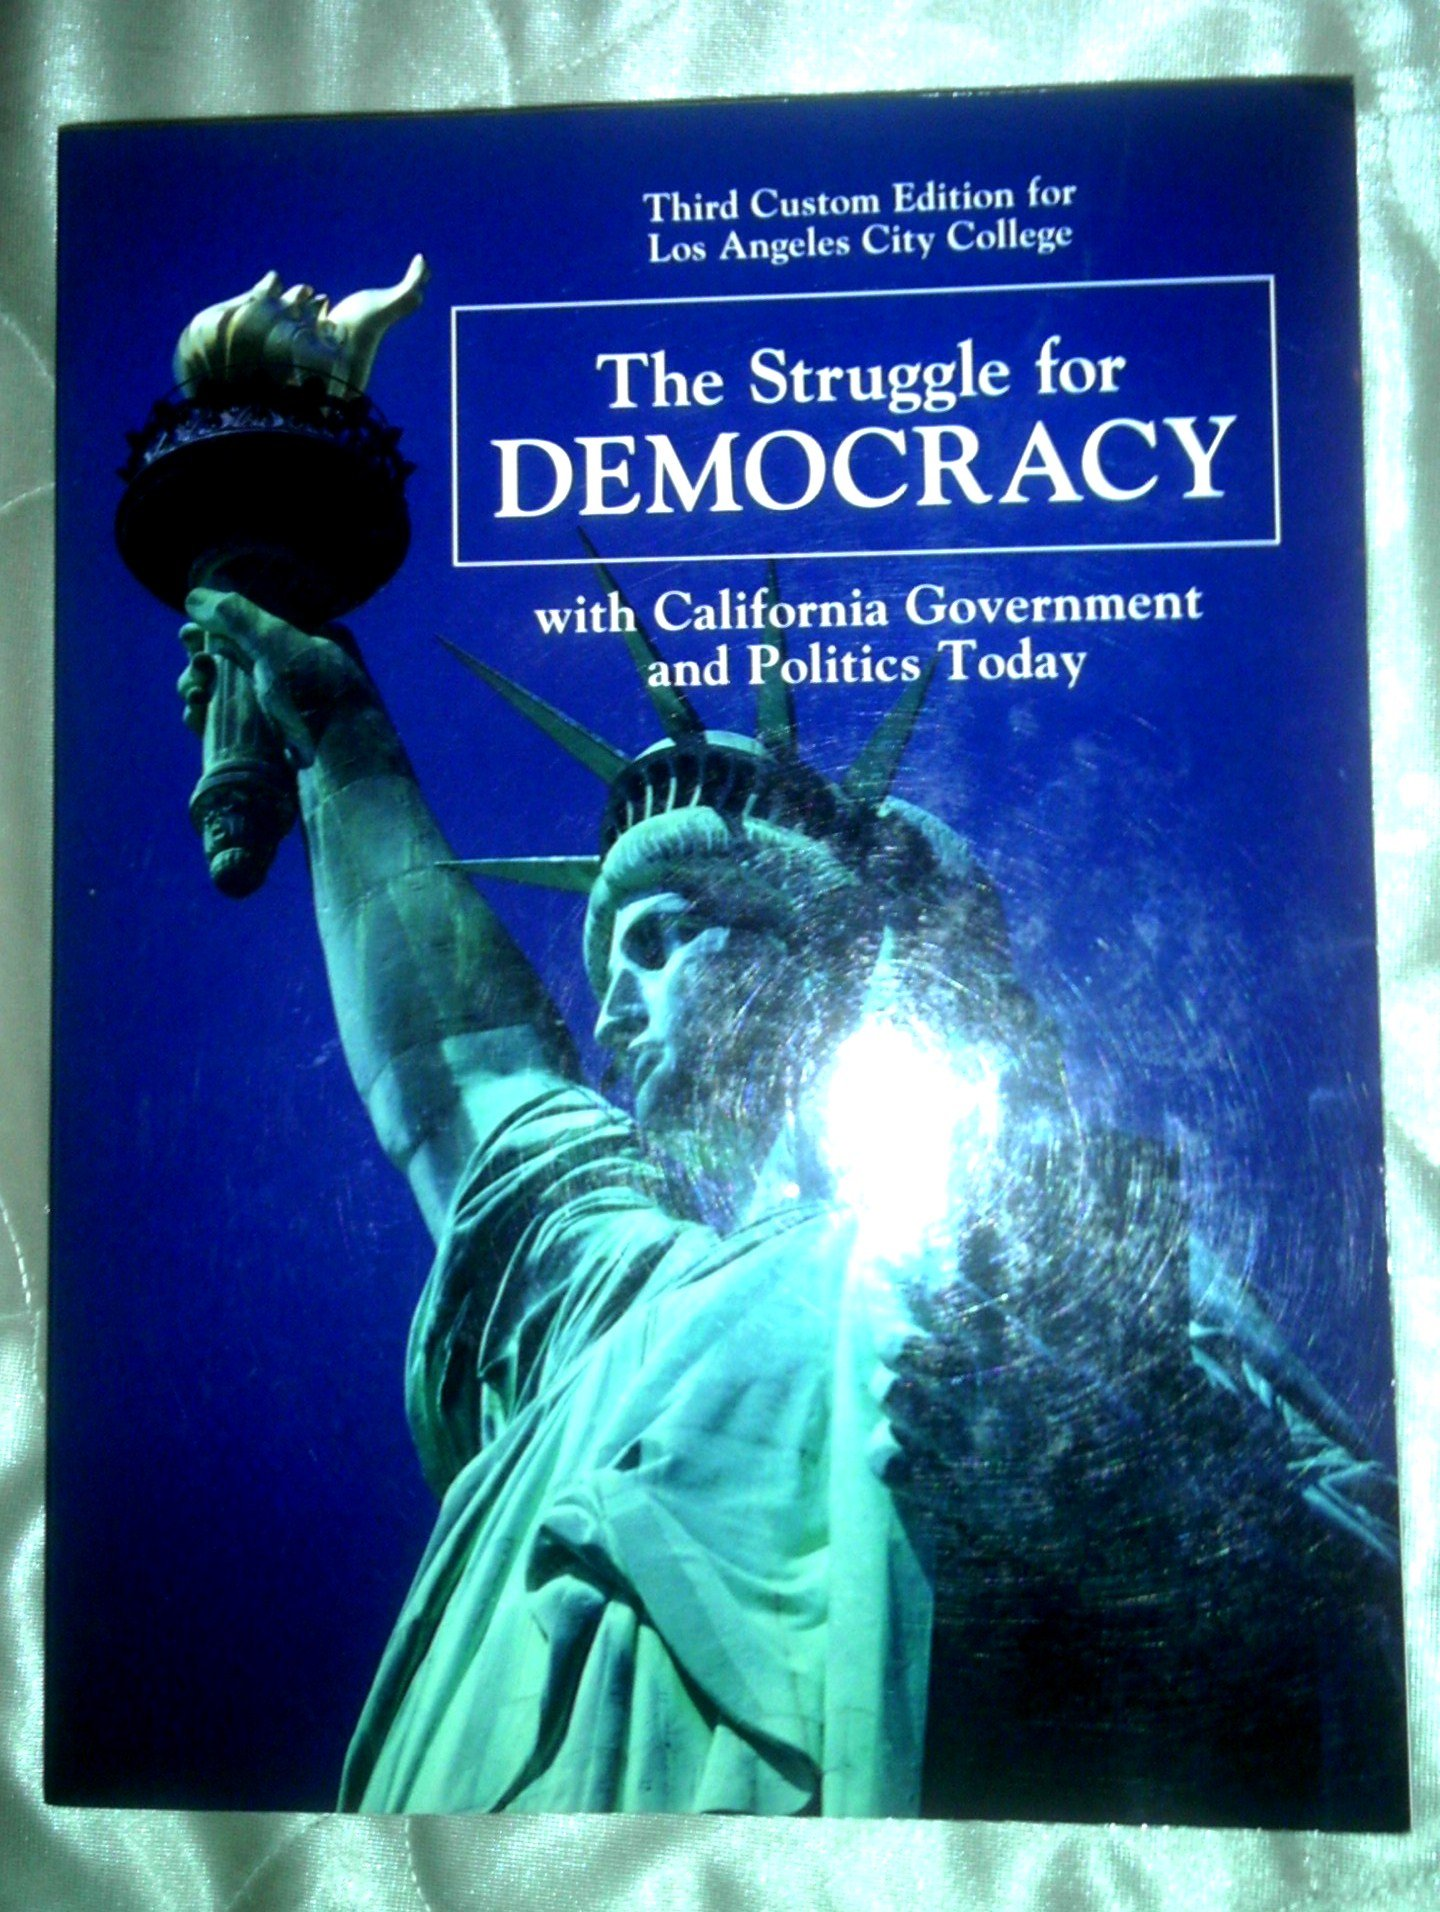 The struggle for democracy with california government and politics the struggle for democracy with california government and politics today custom edition for los angeles city college los angeles city college fandeluxe Choice Image